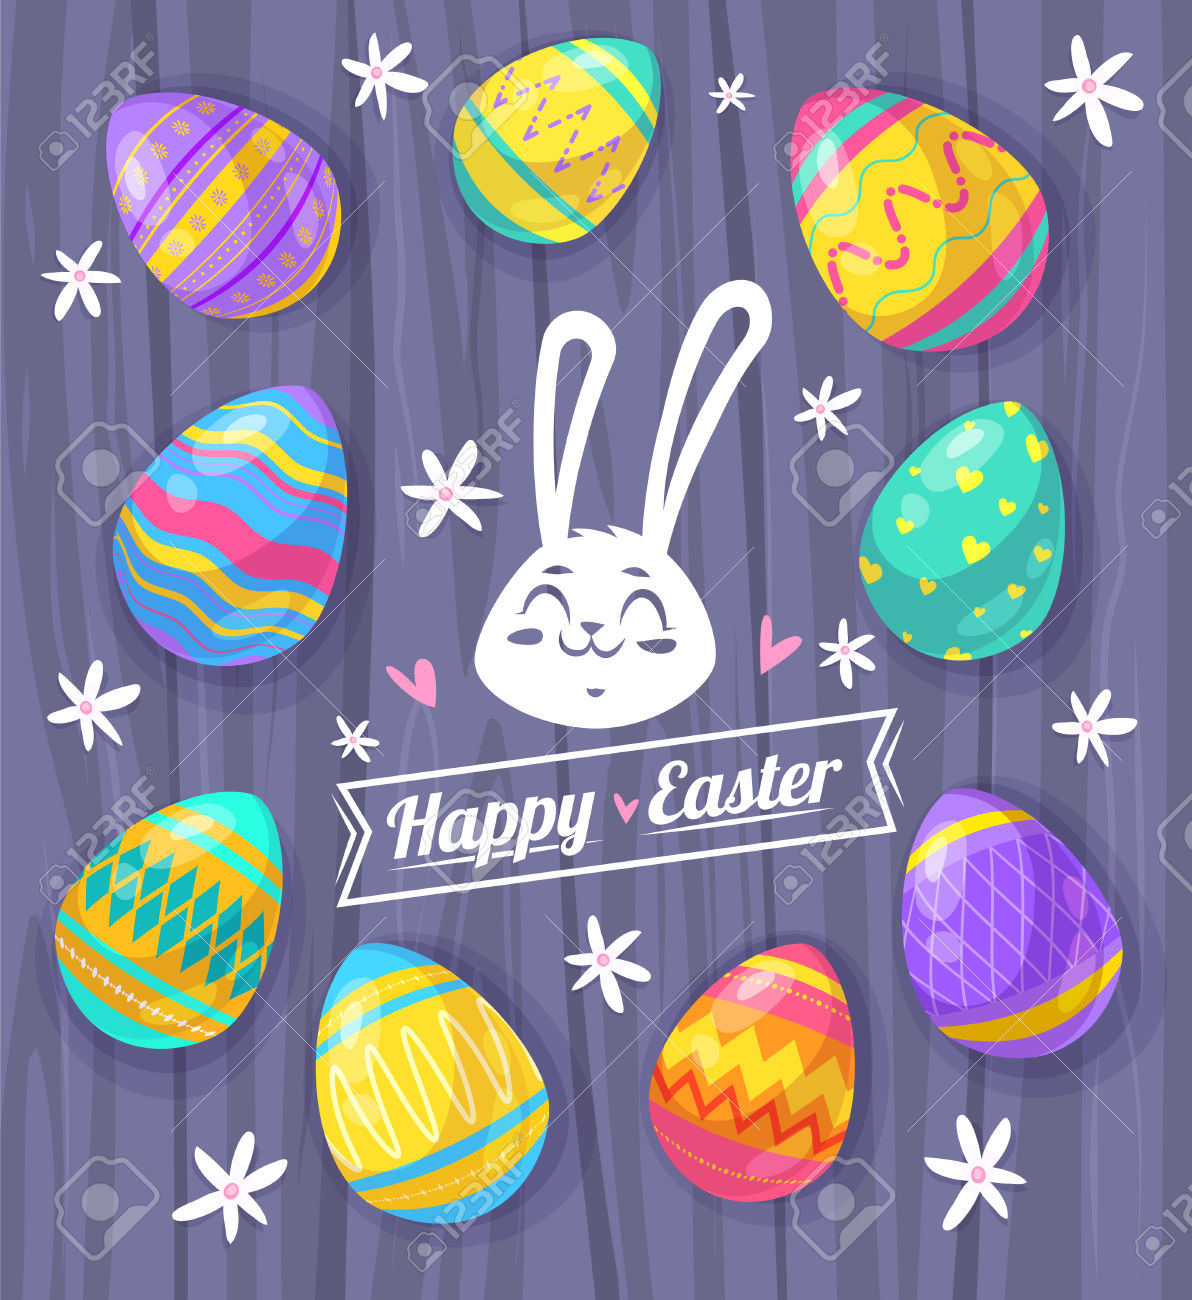 Happy Easter Greeting Card With Wood Texture And Eggs. Royalty.